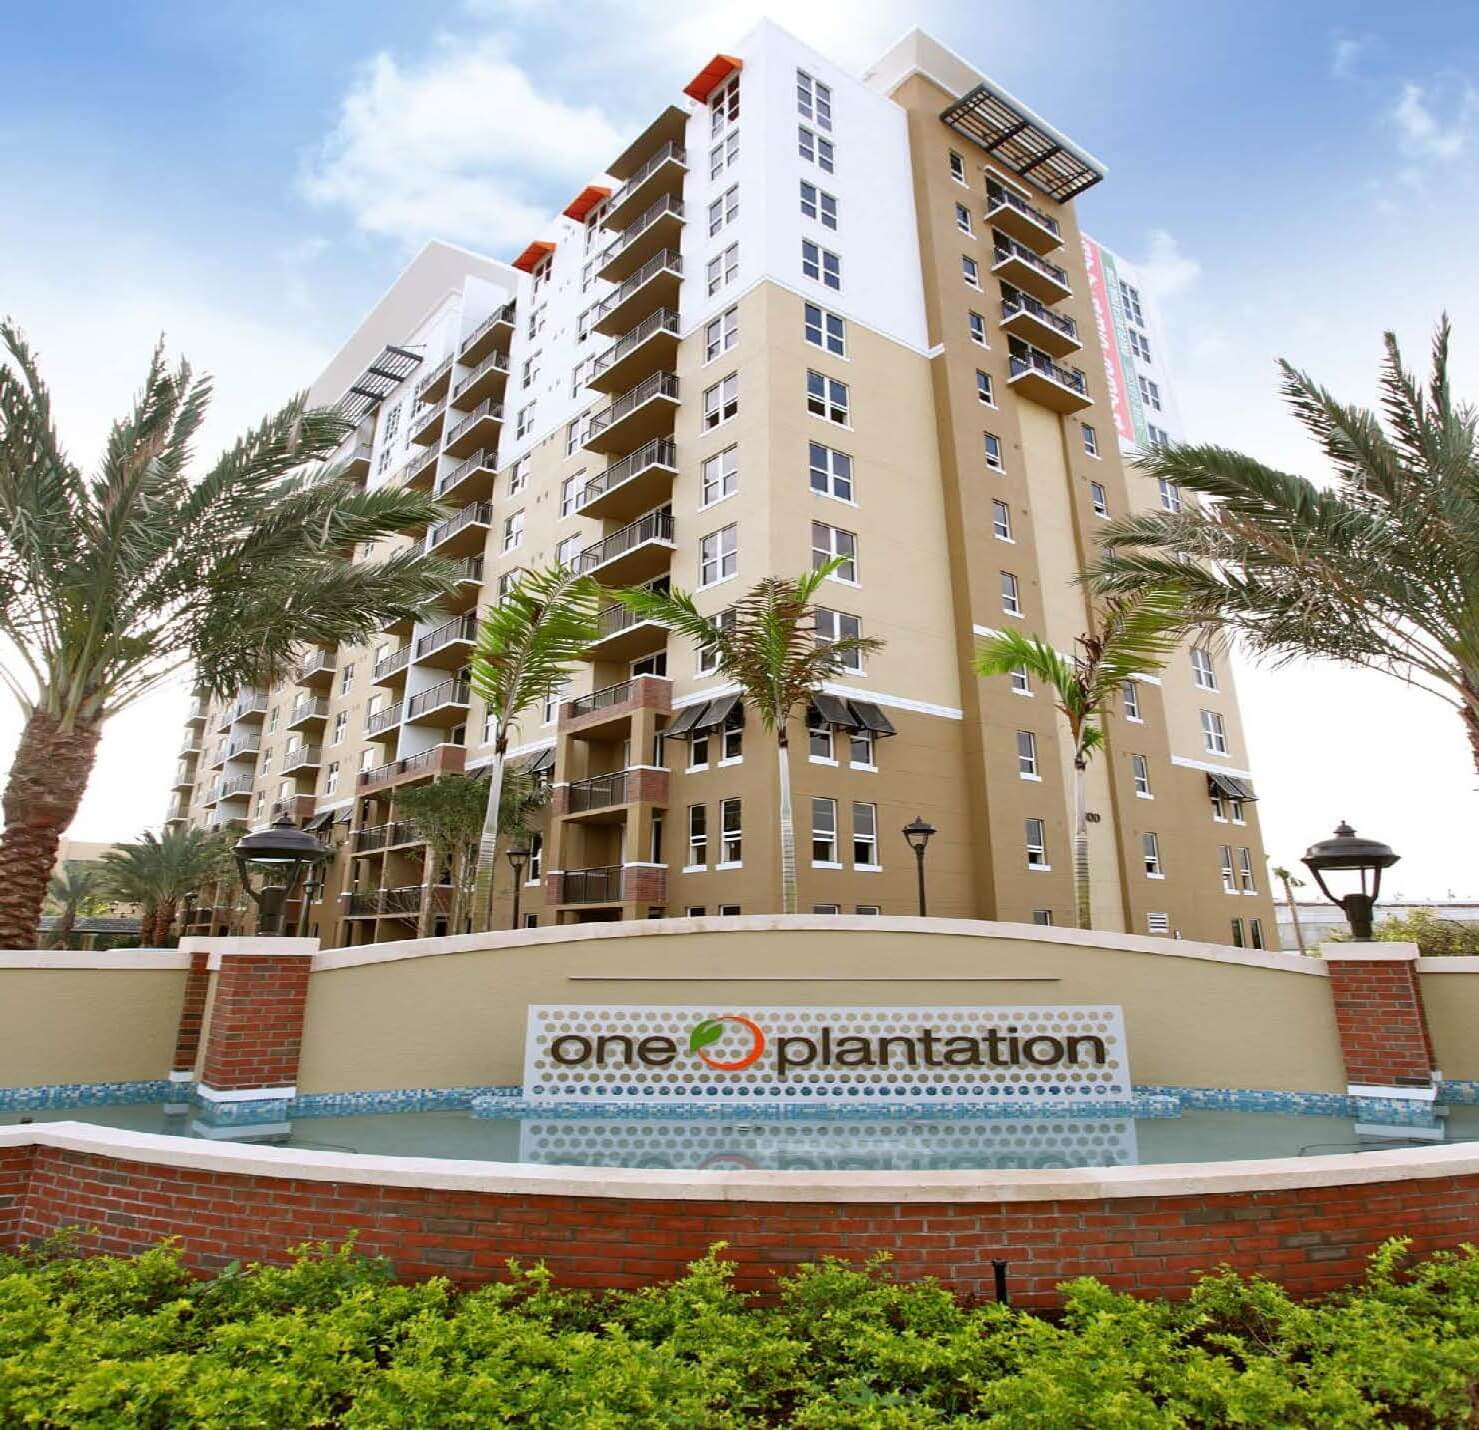 Plantation Apartments: One Plantation Apartments And Retail Center Awarded NAIOP